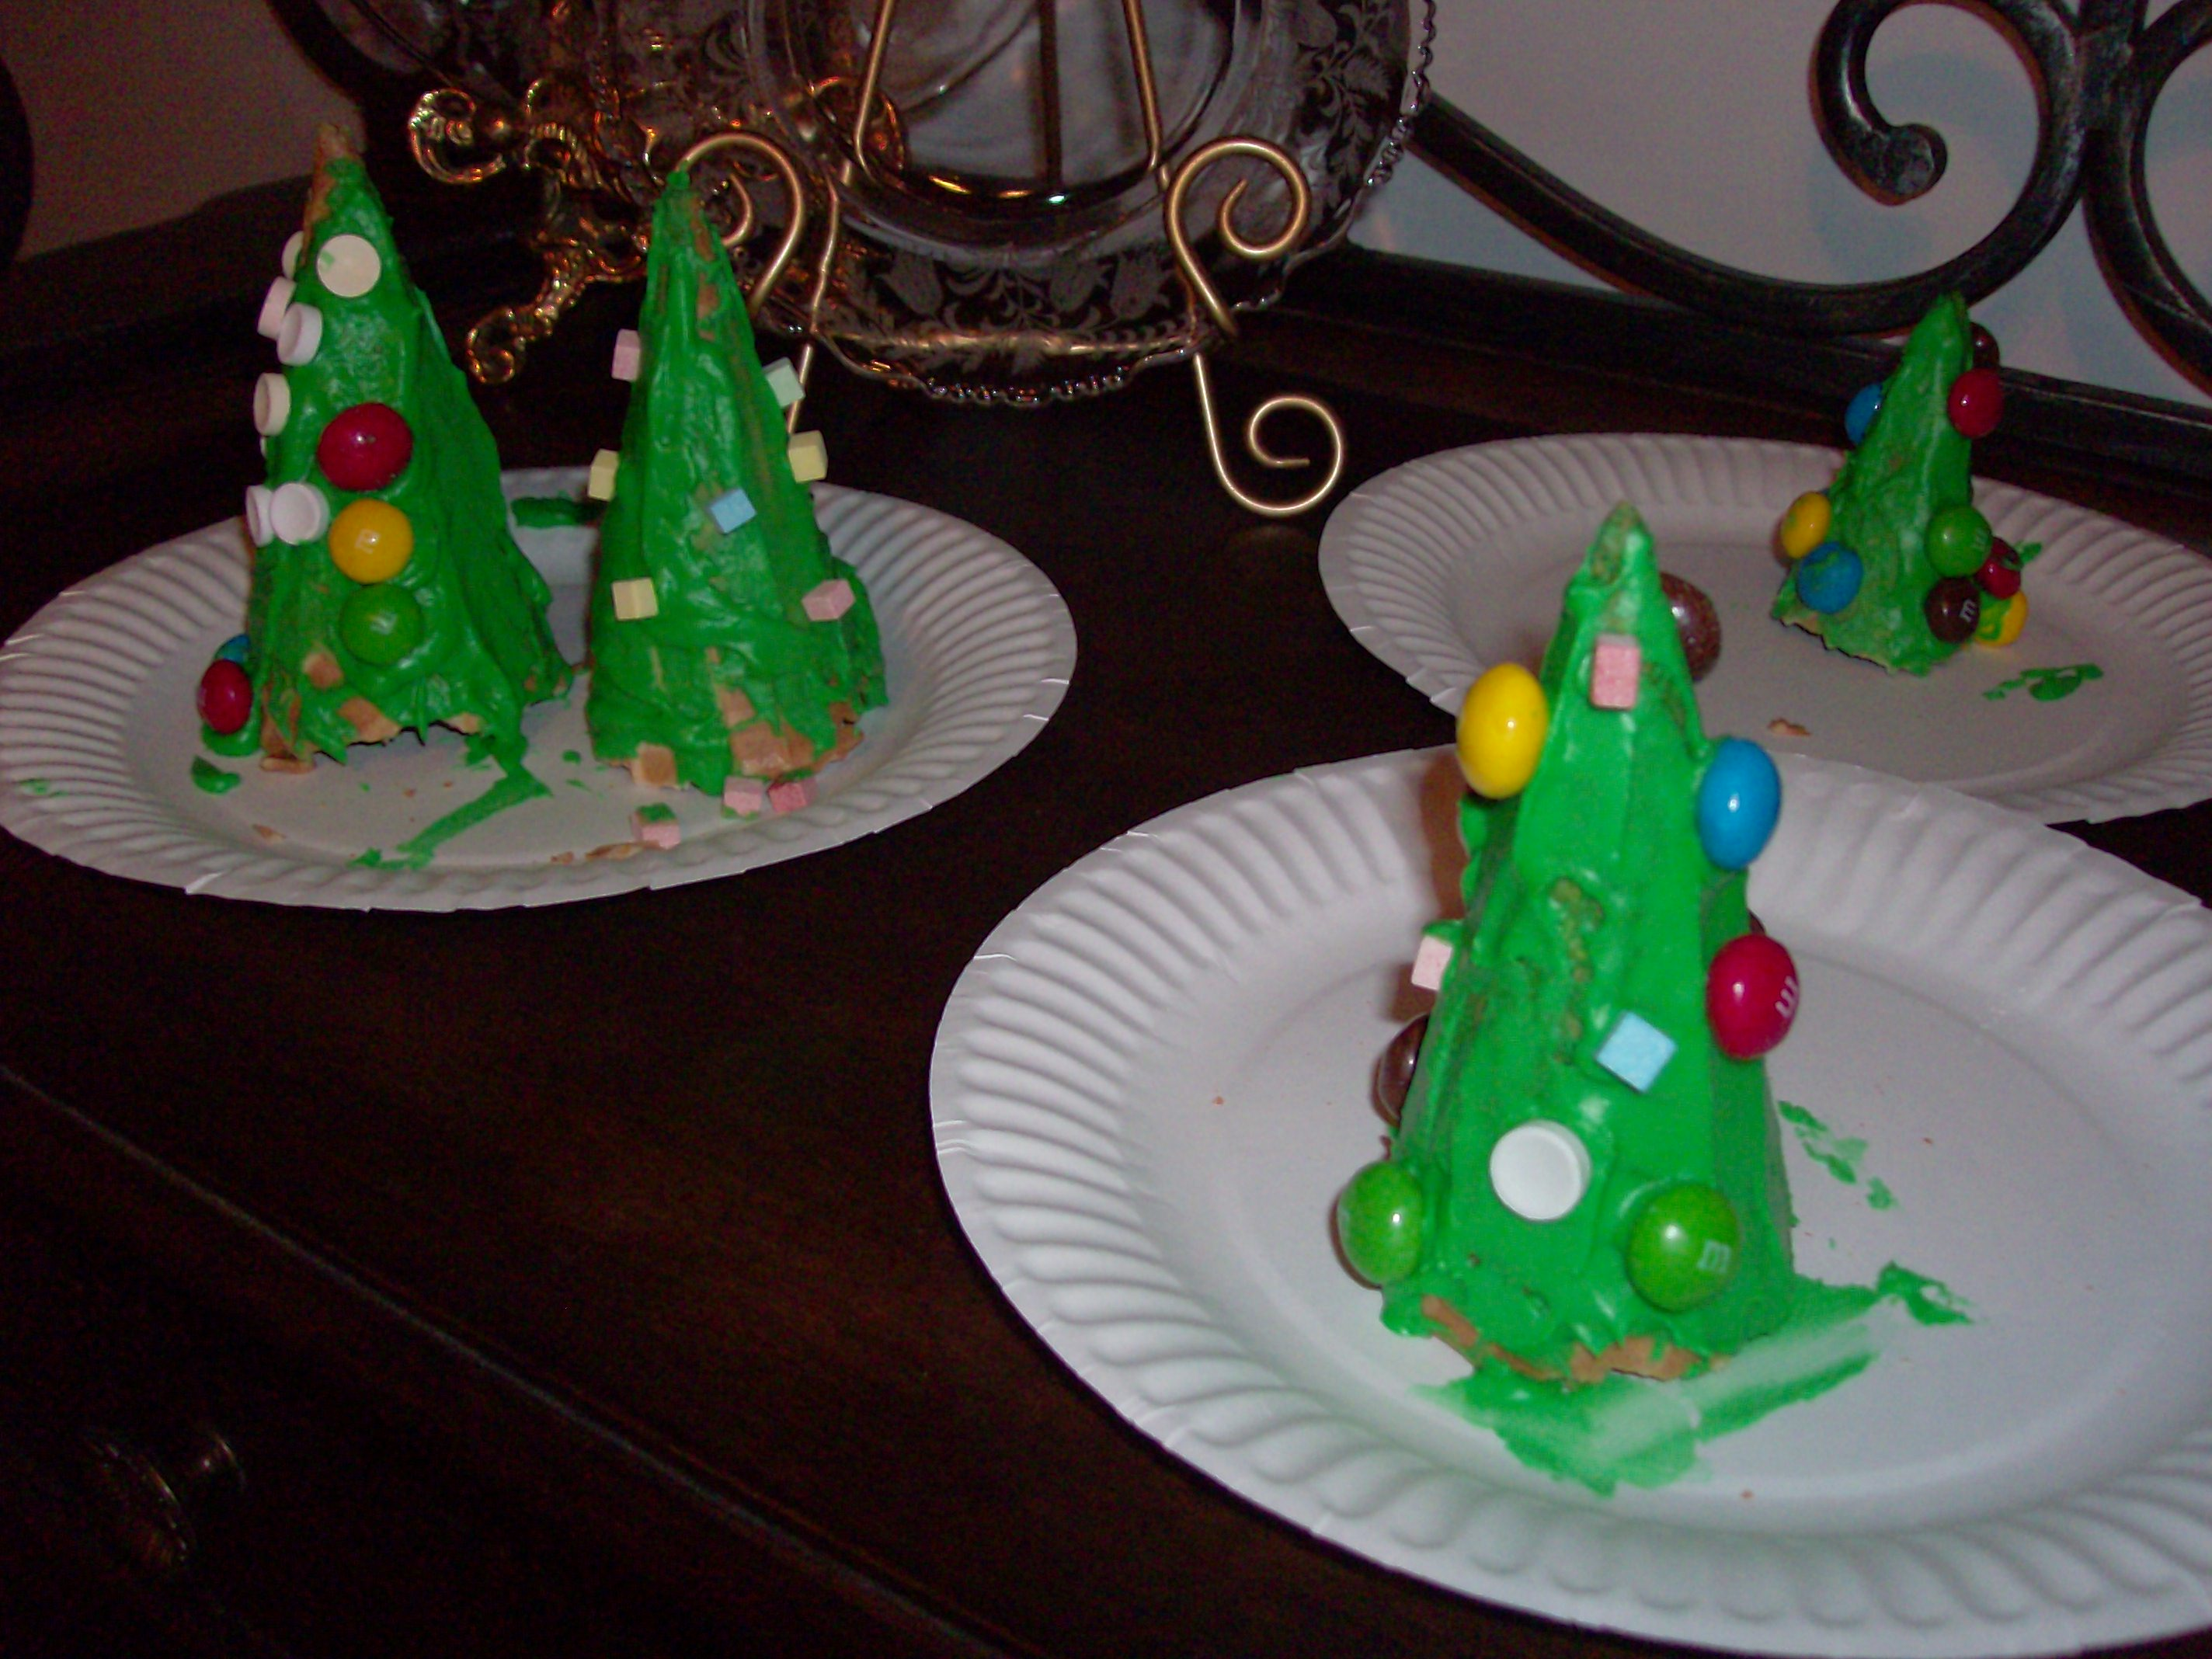 Making christmas decorations in school - Kids Craft Edible Christmas Tree Cones Crafts